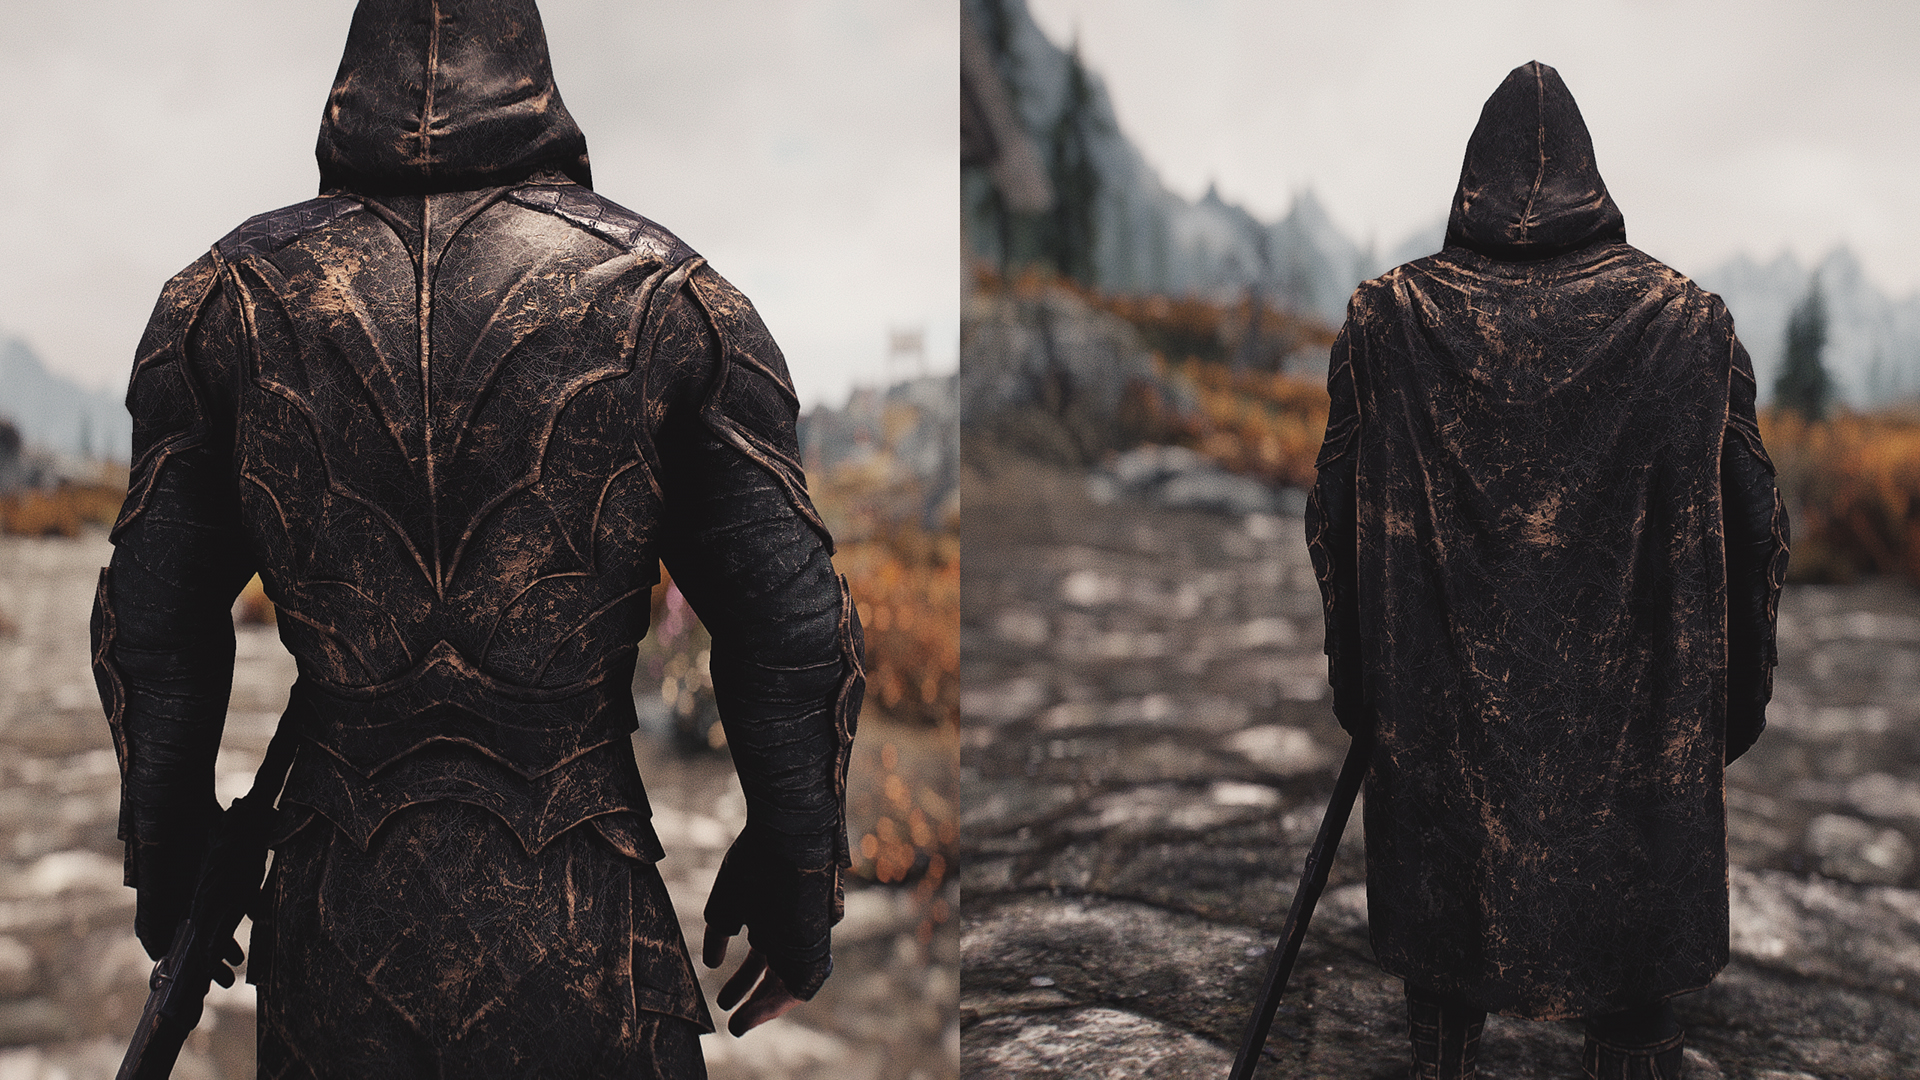 Skyrim Special Edition Nightingale 4K HD Armor and Weapons